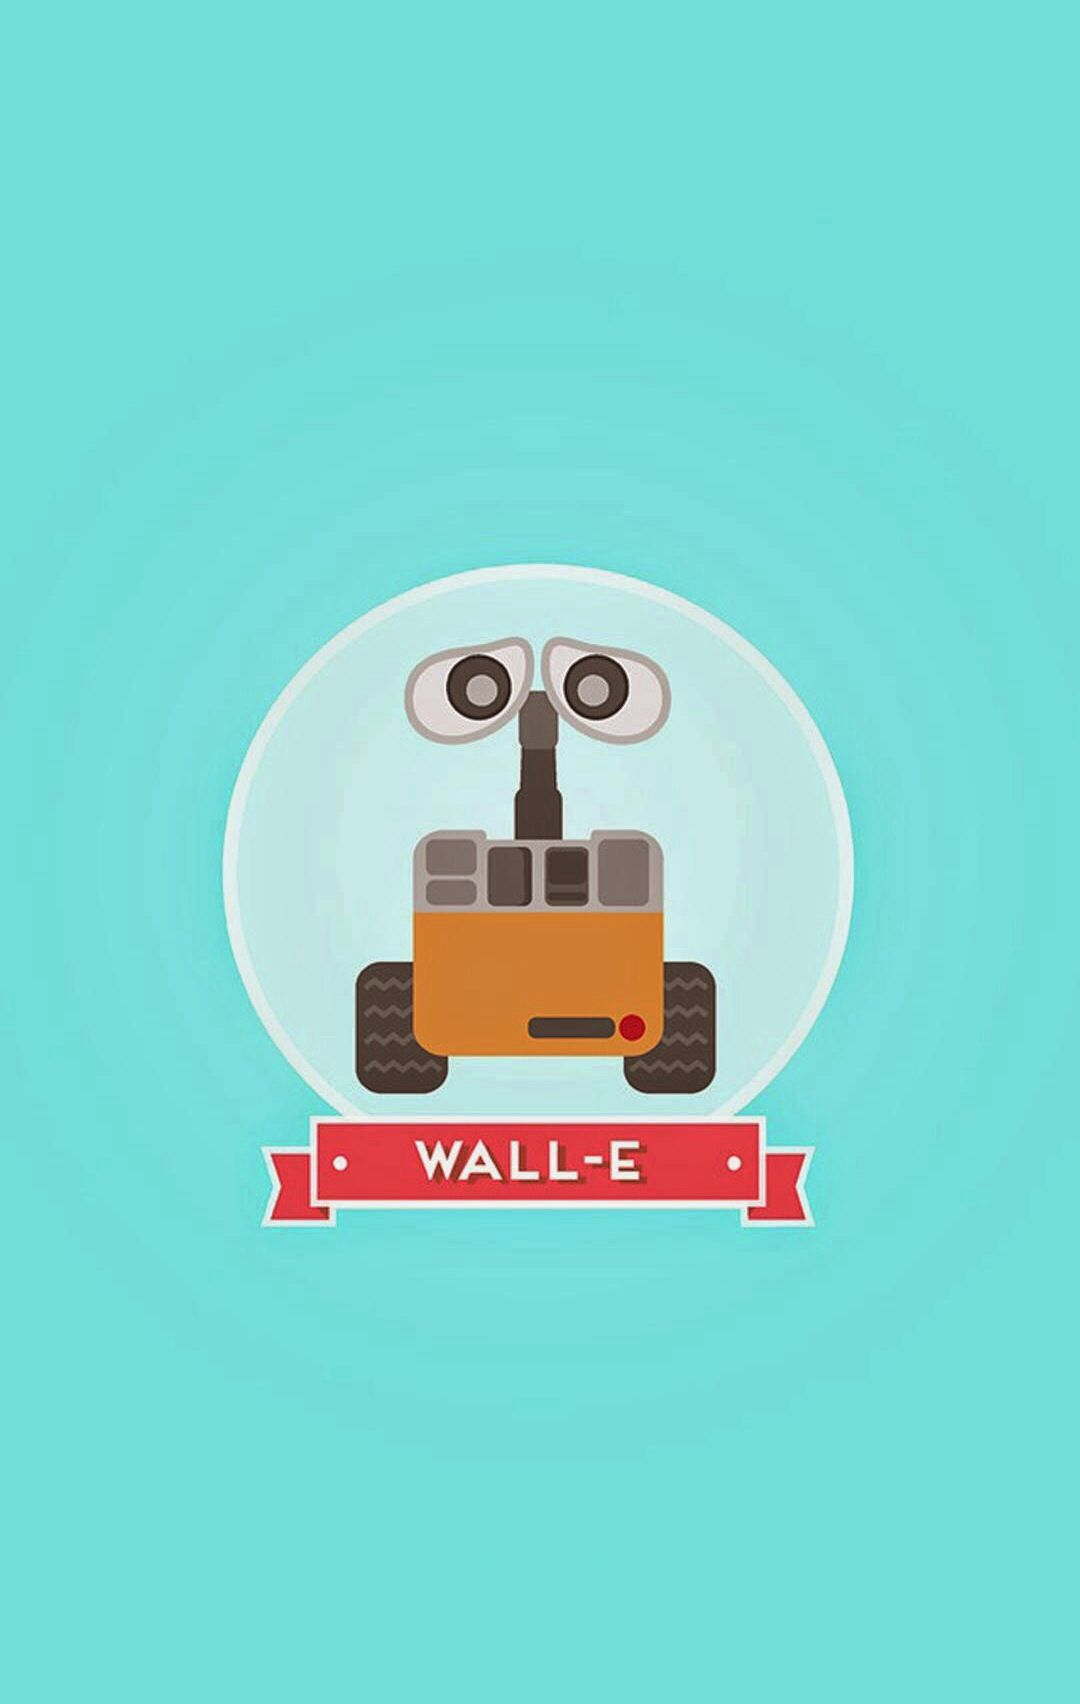 Wall-e iPhone wallpaper | iPhone Wallpaper | Pinterest | Wallpaper and Characters